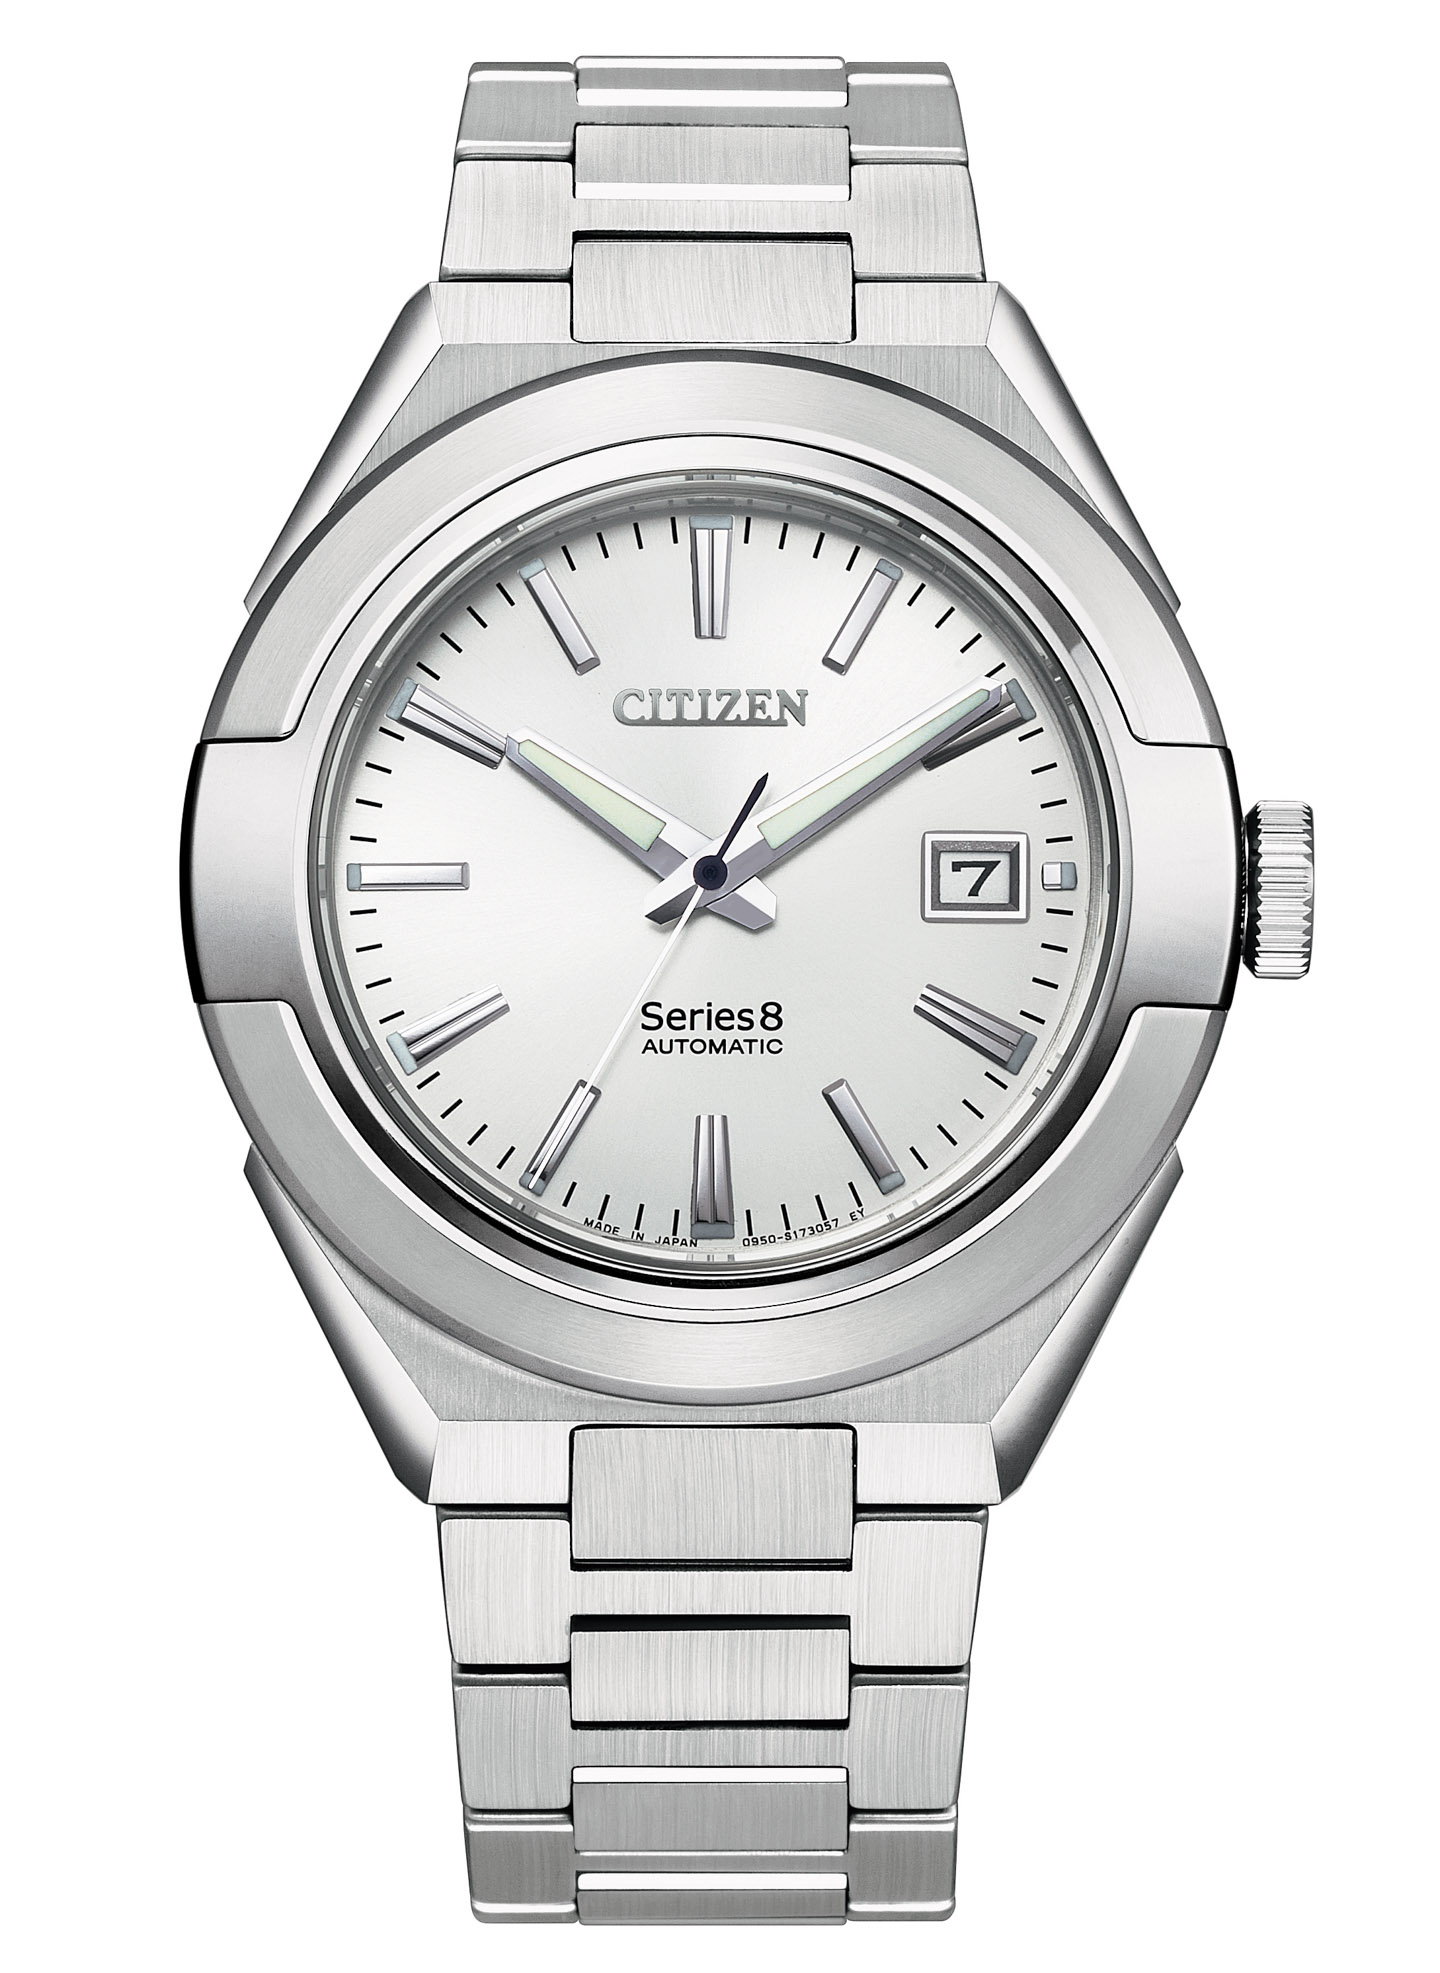 Citizen Series 8 Automatic watches 2